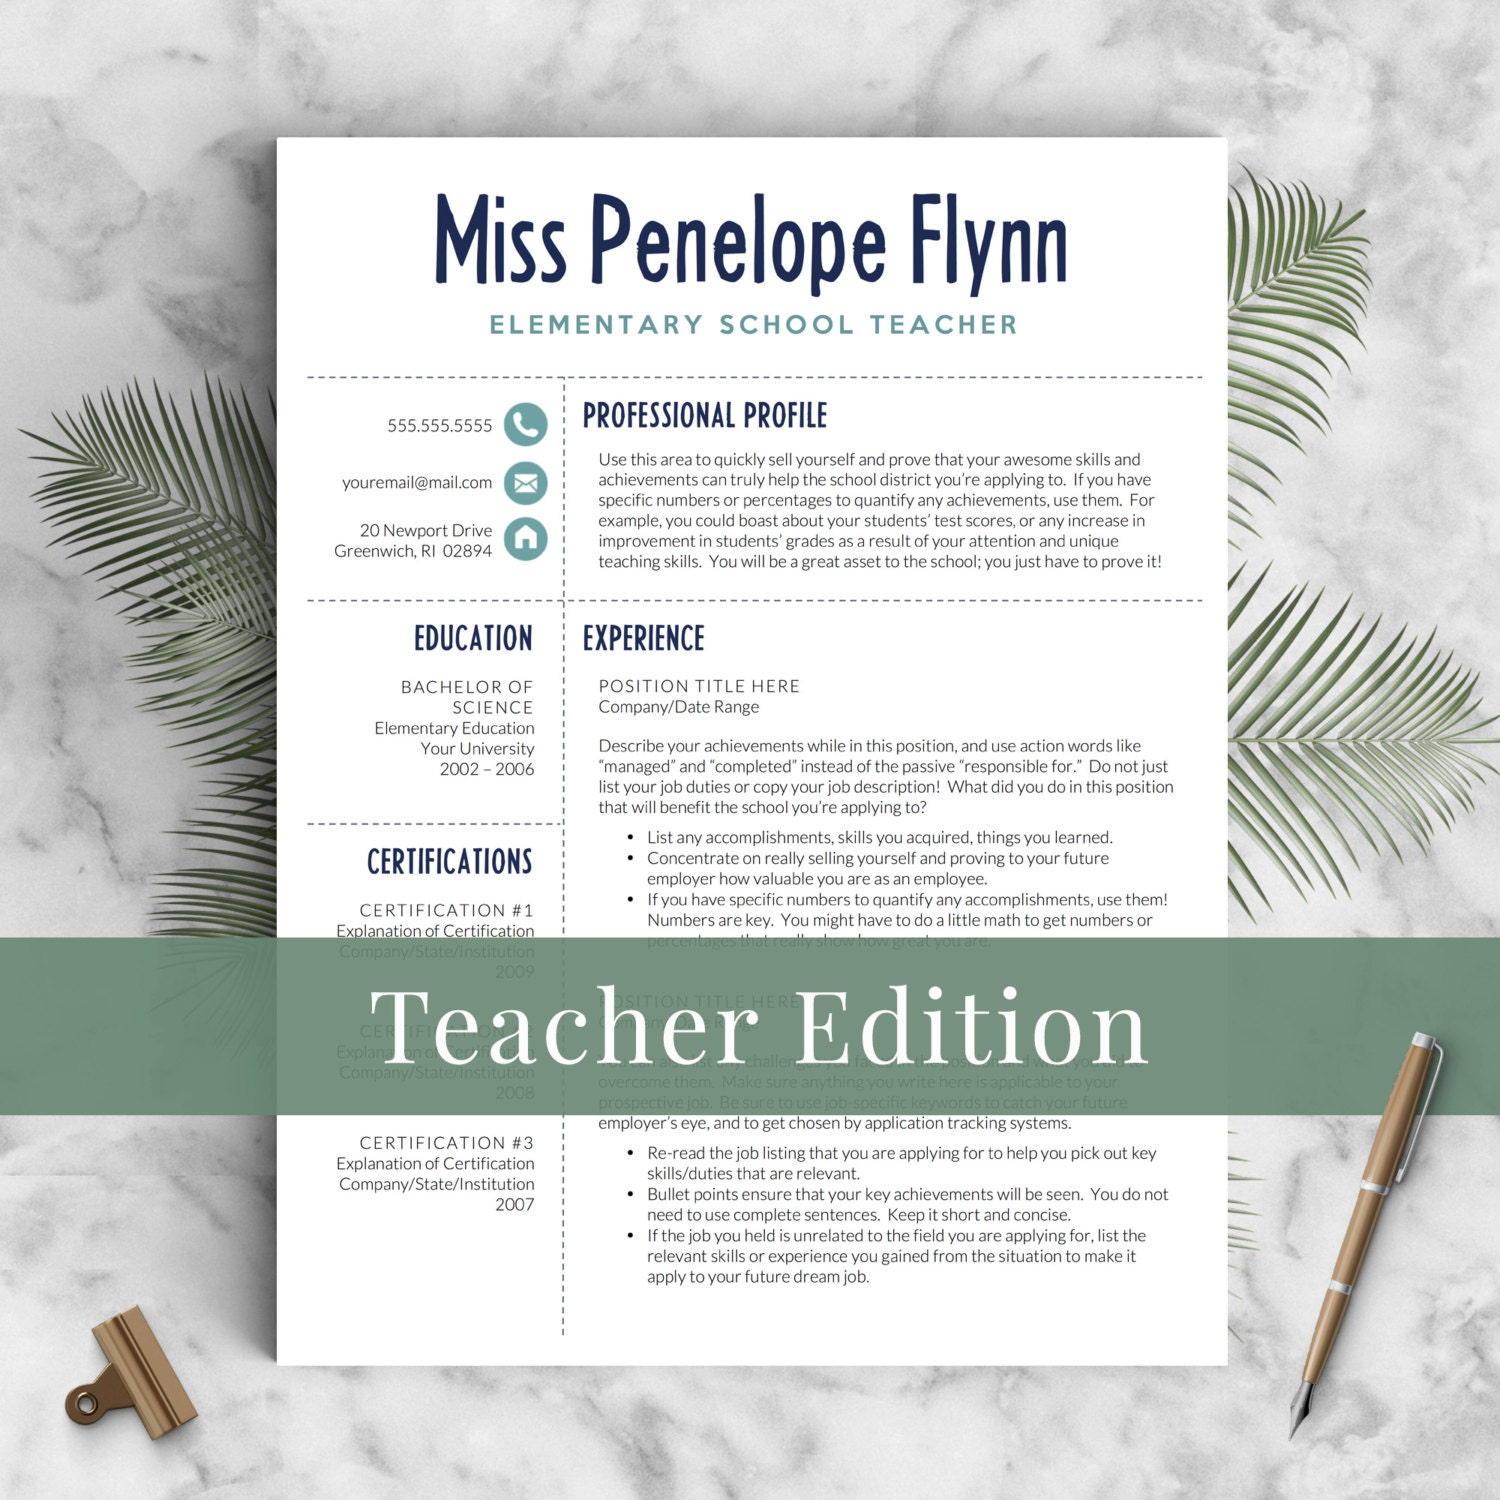 Elementary teacher resume template for word pages 1 3 zoom yelopaper Gallery